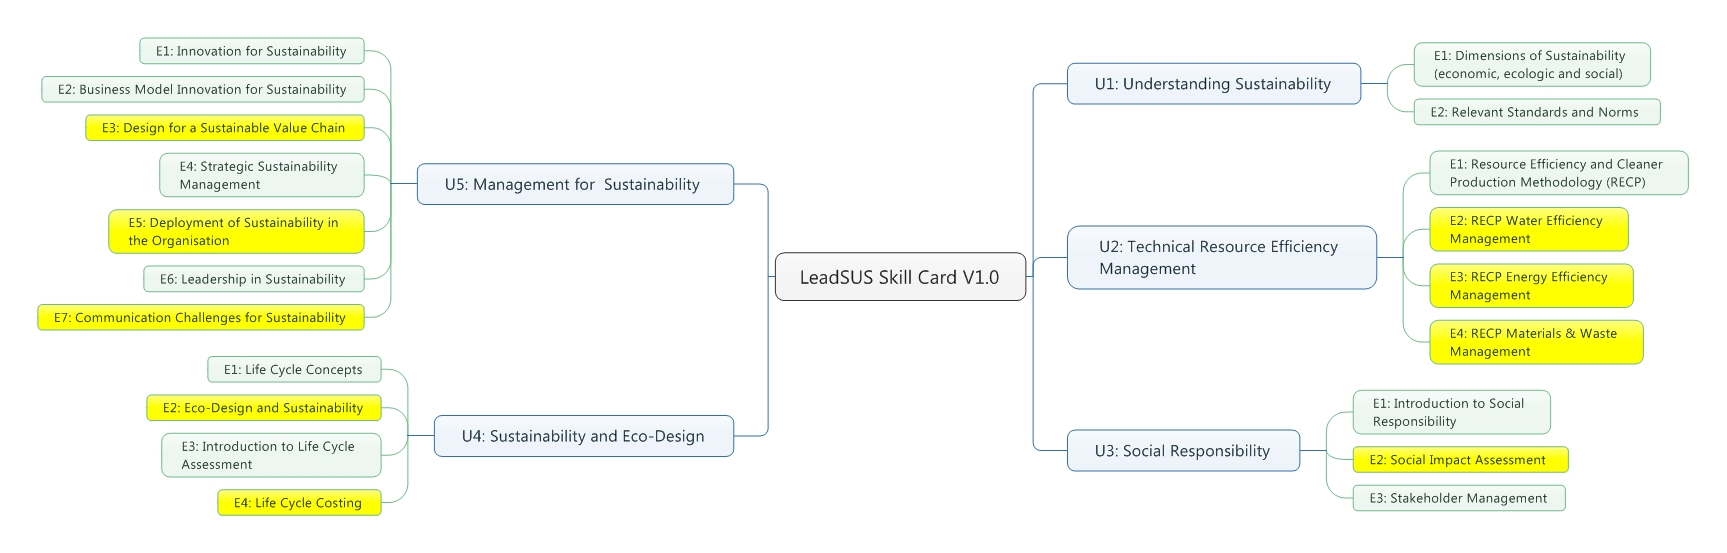 Leadsus skill card 2